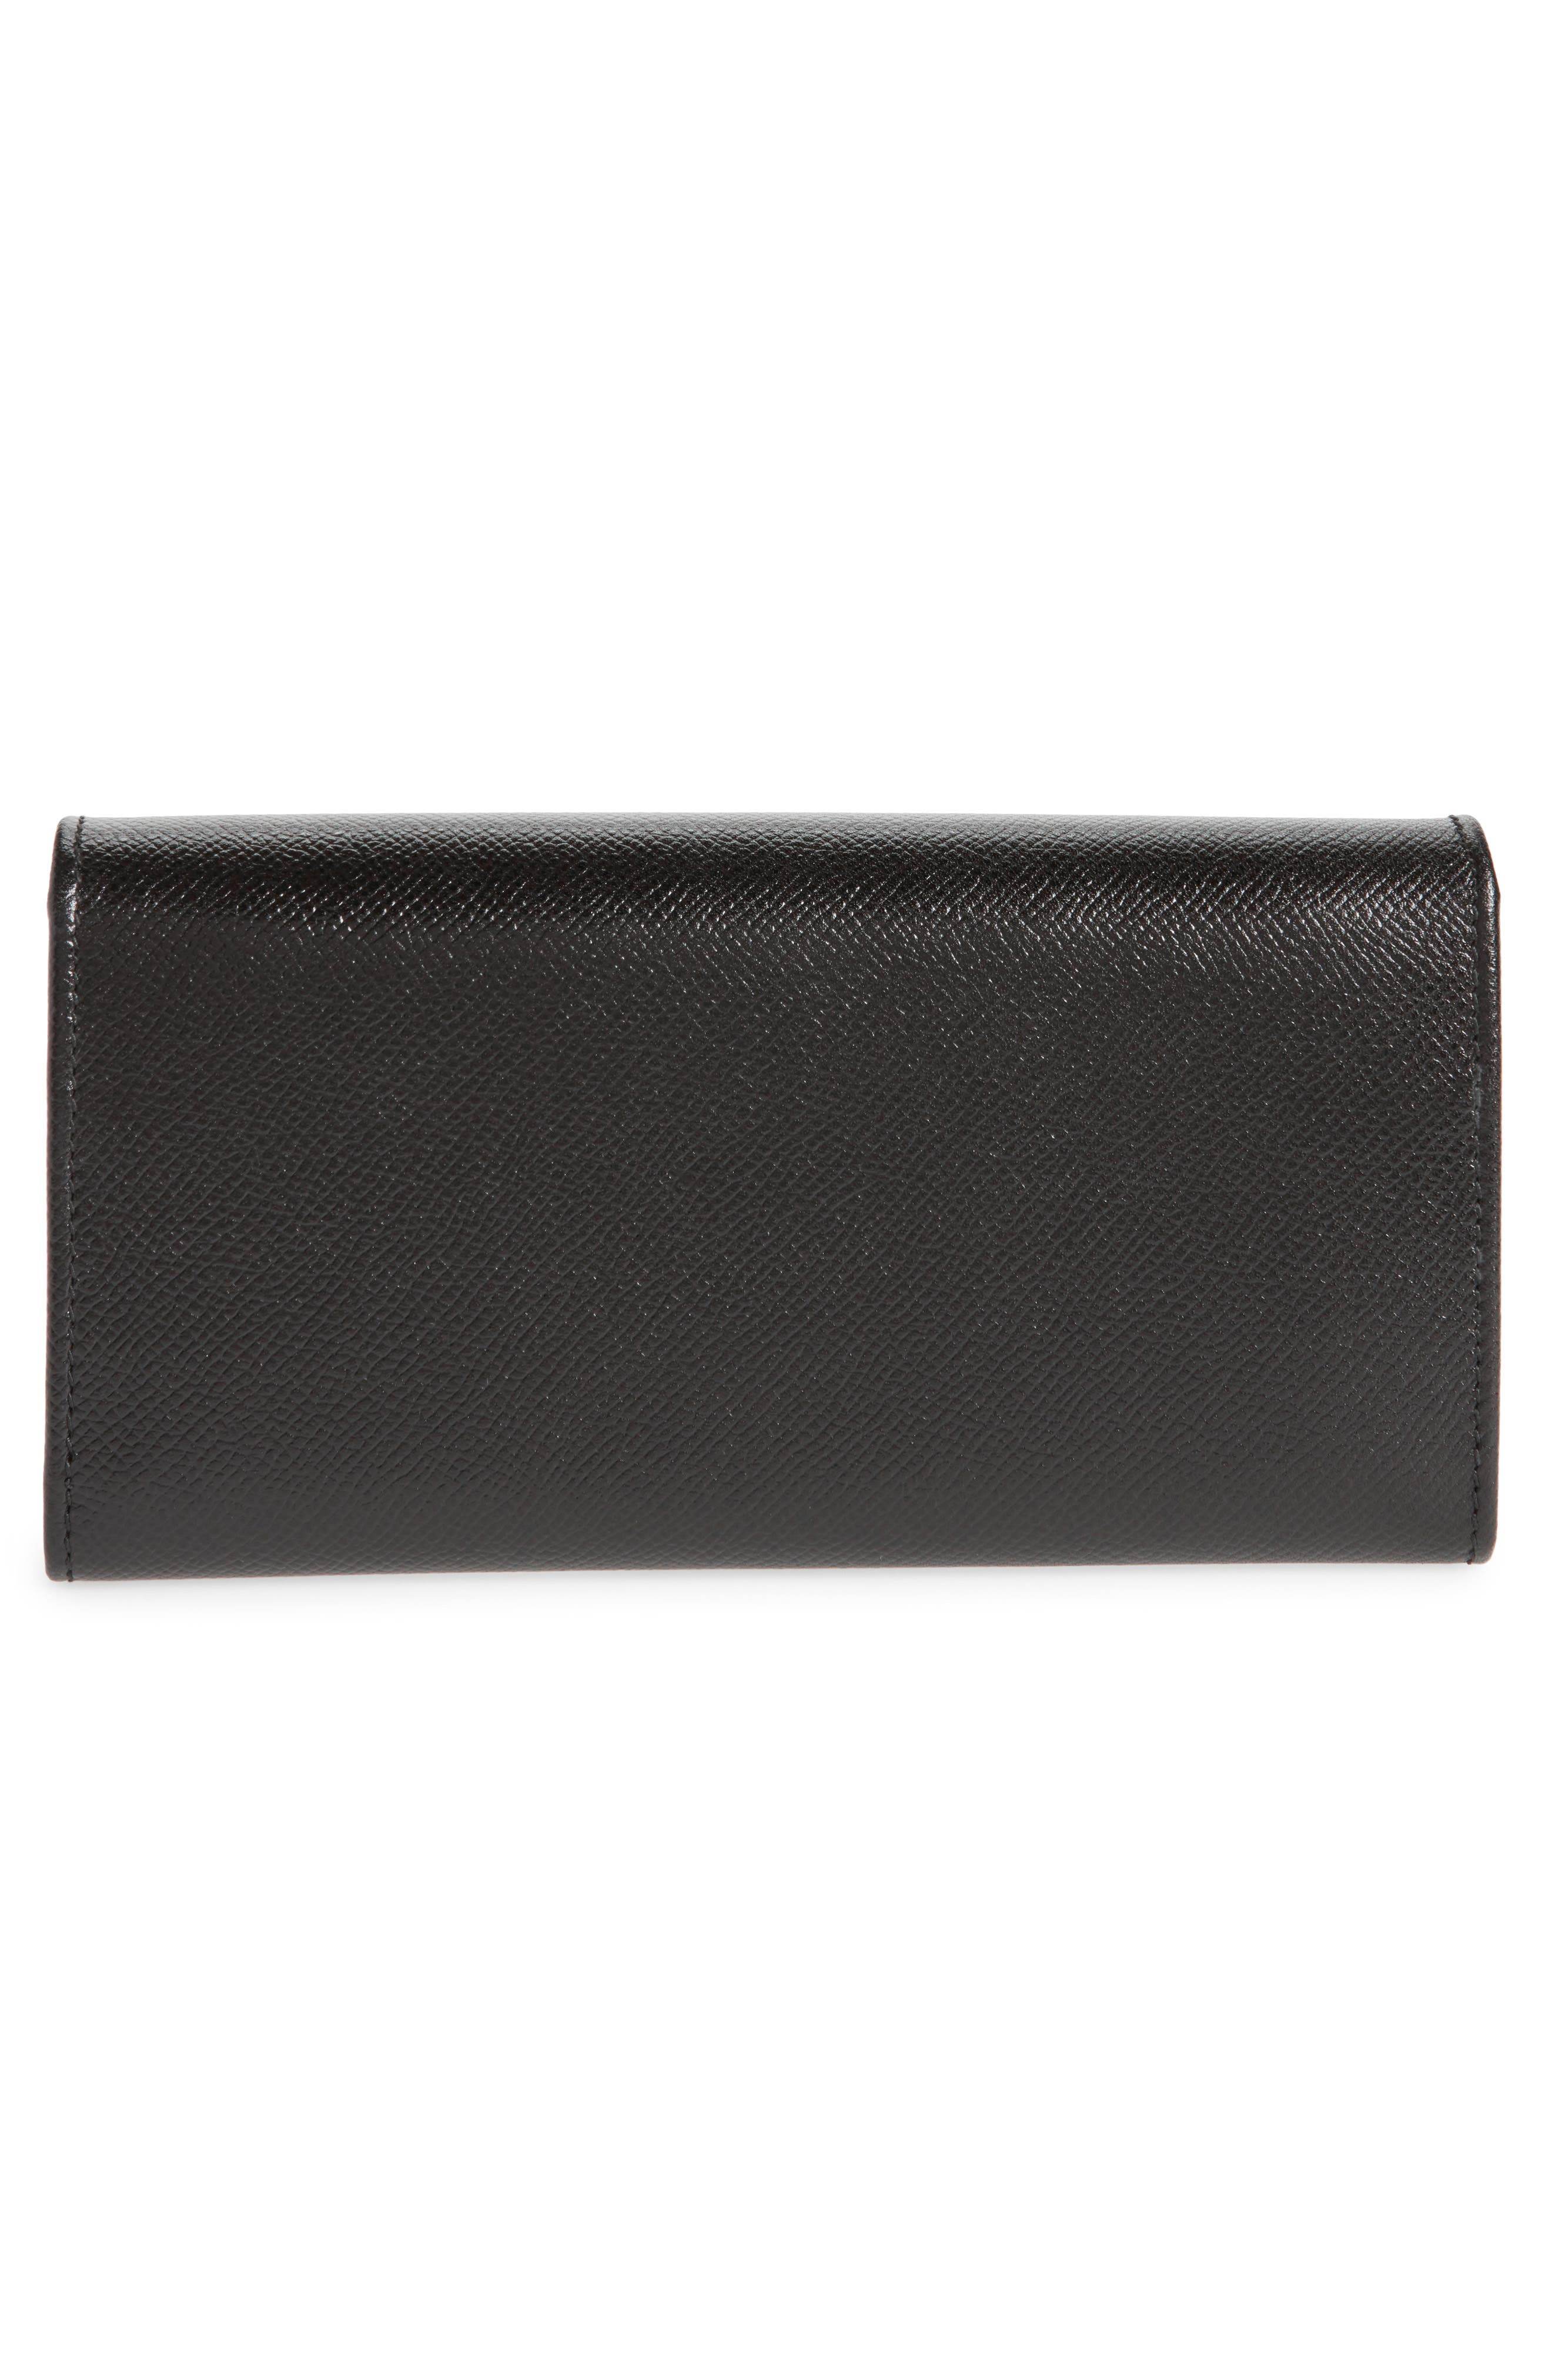 Gancio Leather Continental Wallet,                             Alternate thumbnail 3, color,                             070